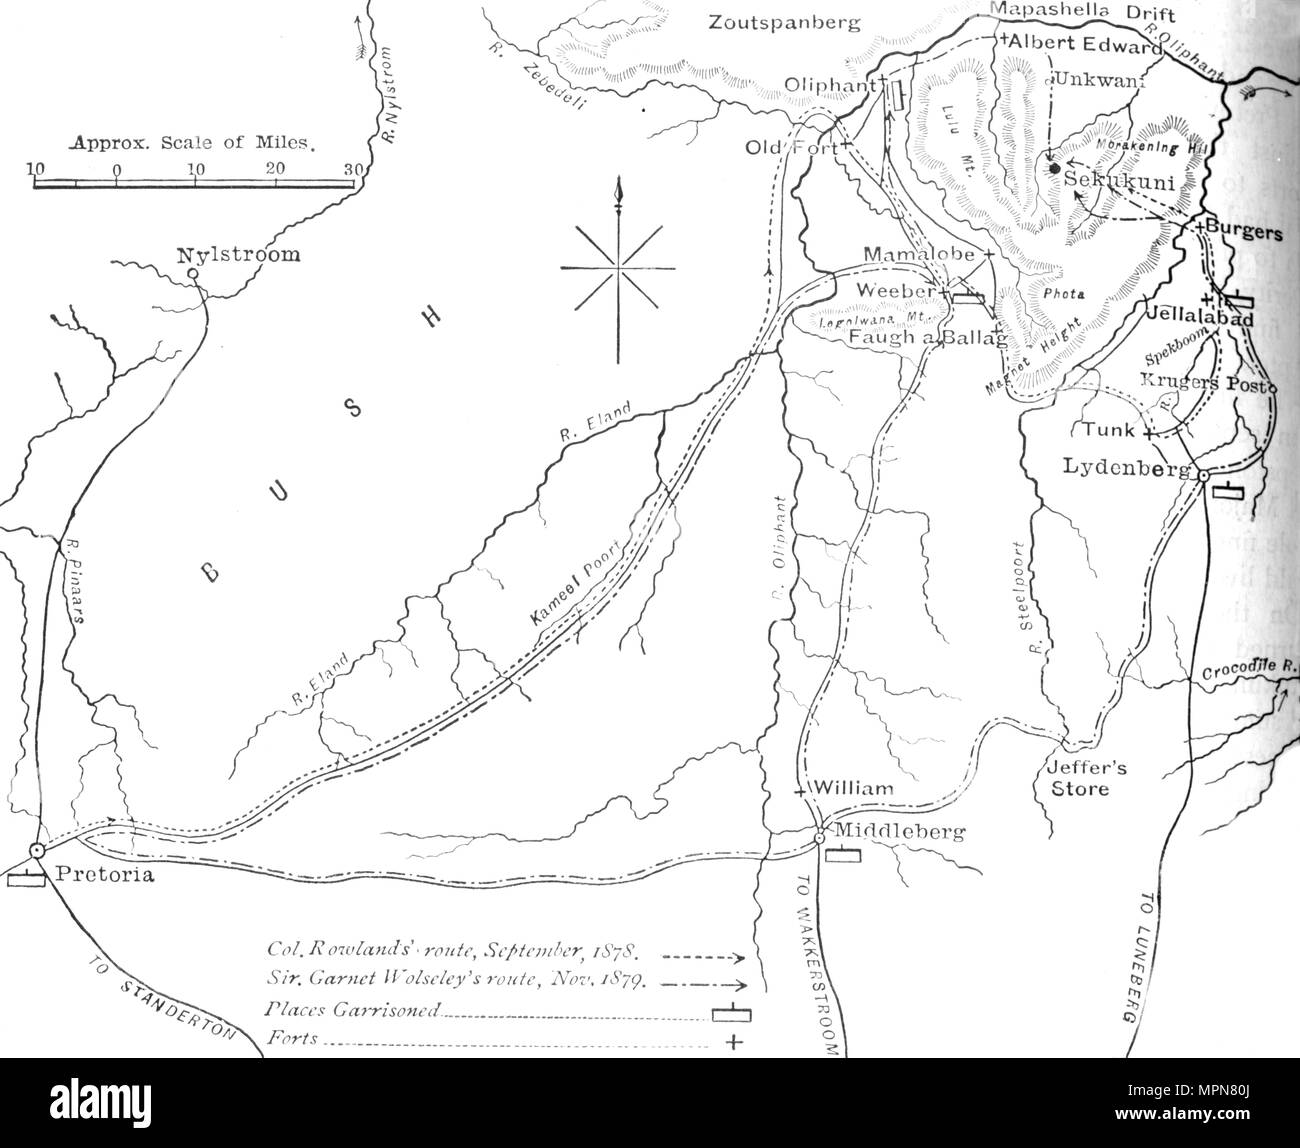 'Sketch Map of Sekukuni's Country', c1880. Artist: Unknown. - Stock Image